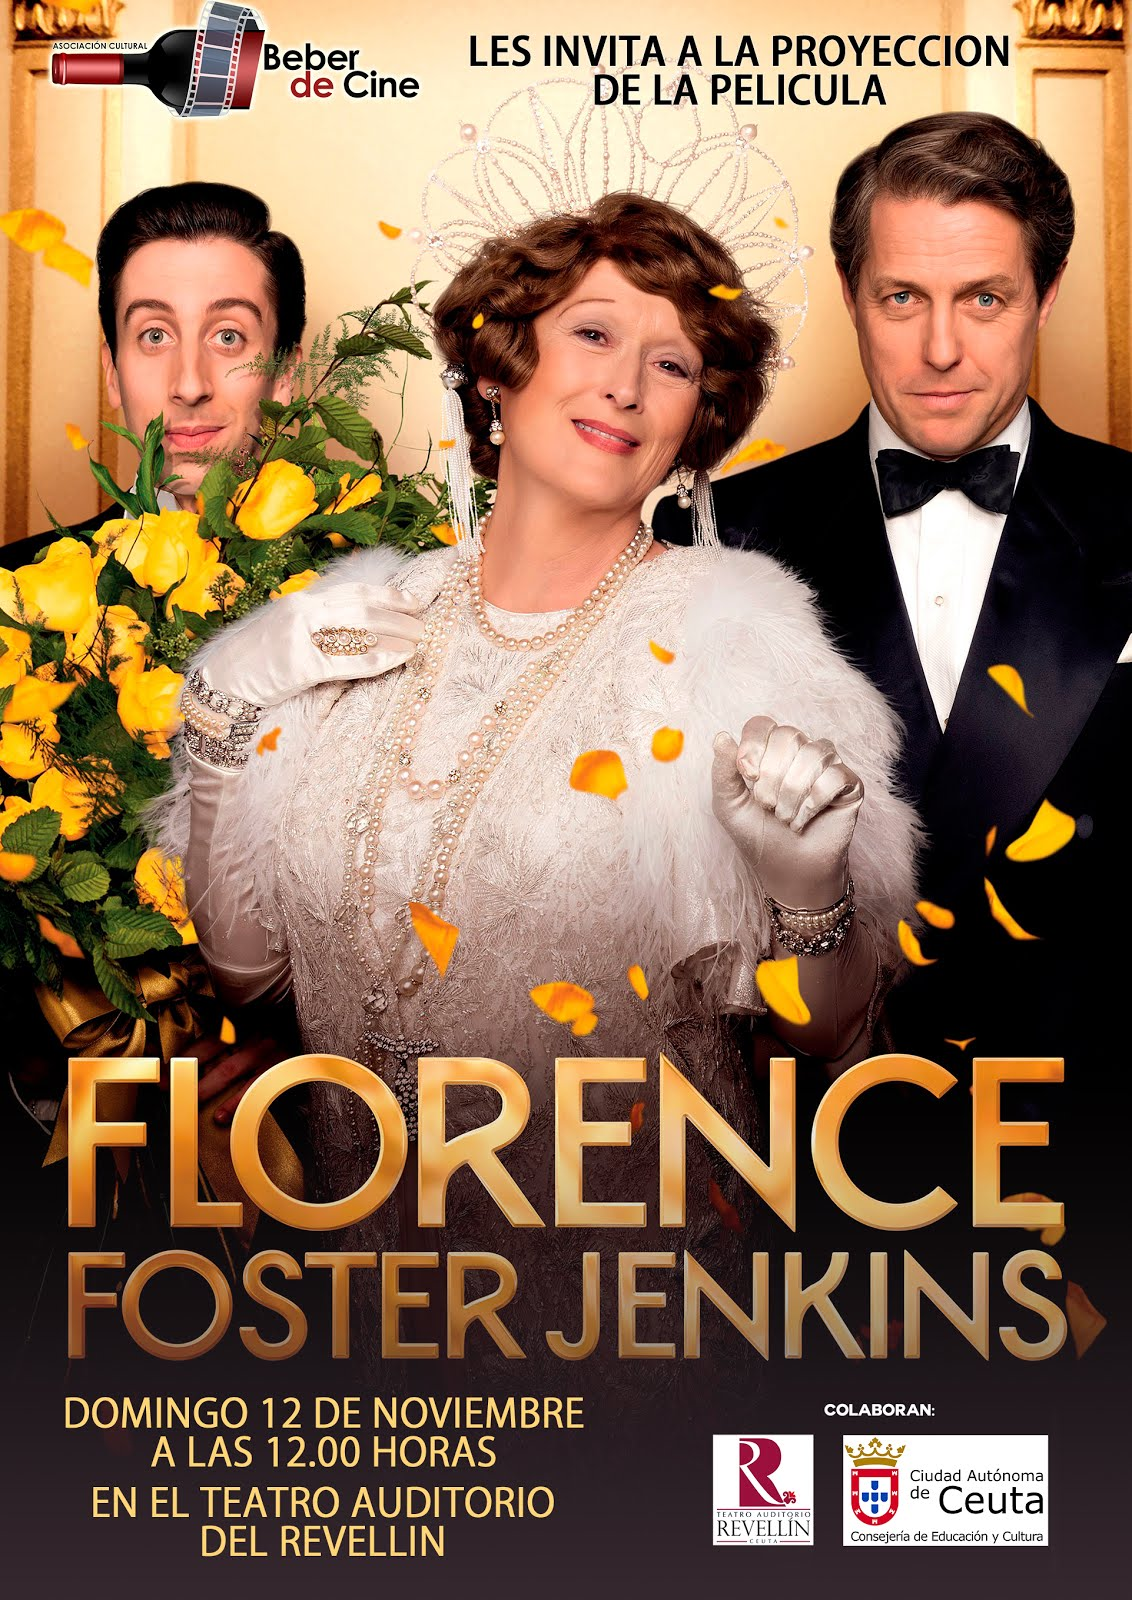 FLORENCE FOSTER DOMINGO 12 Nov.